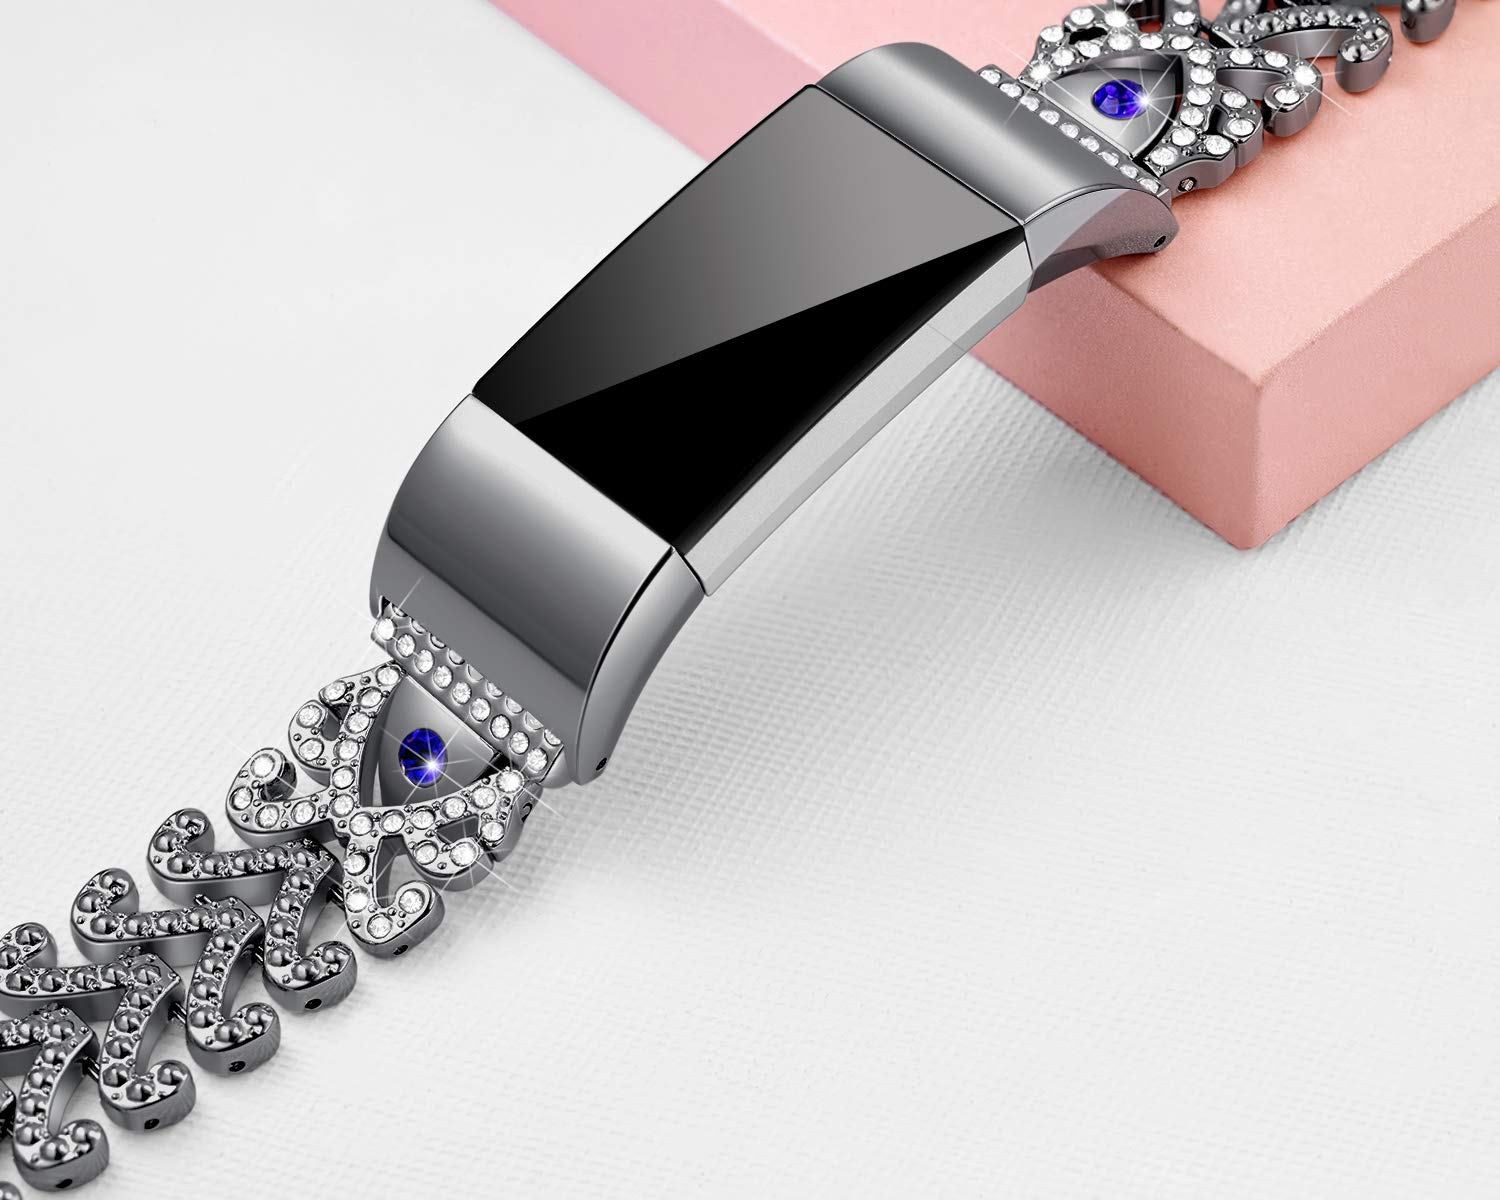 Kaleidoc Bands Compatible Fitbit Charge 2 - Metal Replacement Wristband with Premium Rhinestone Crystals, Adjustable Classy Bracelet Strap Compatible Fitbit Charge 2 Bands